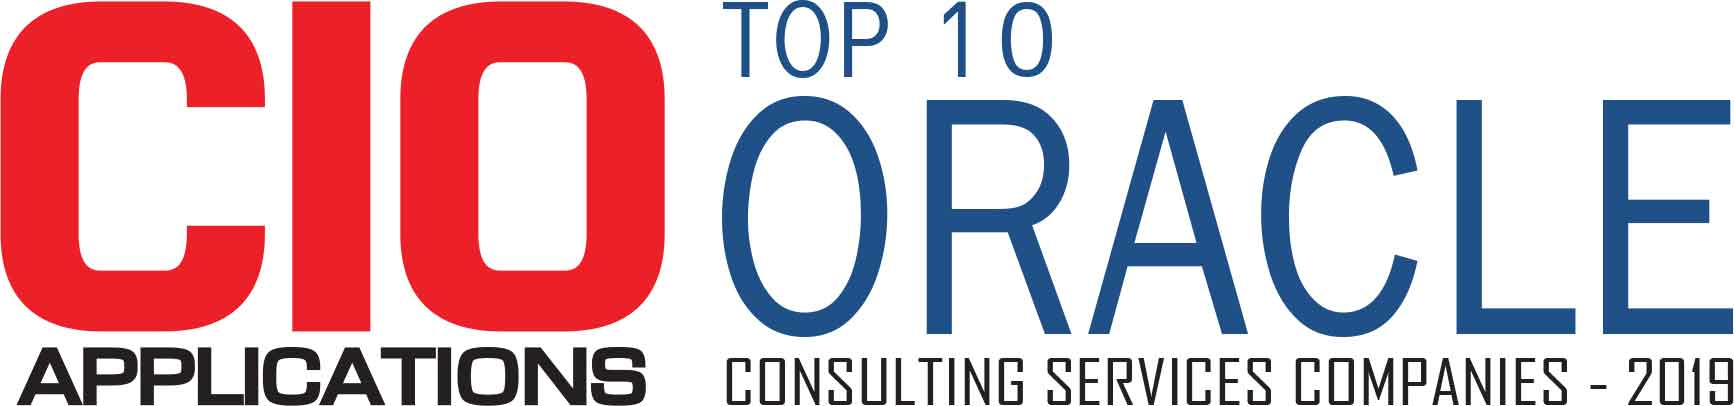 Top 10 Oracle Consulting/Services Companies - 2019